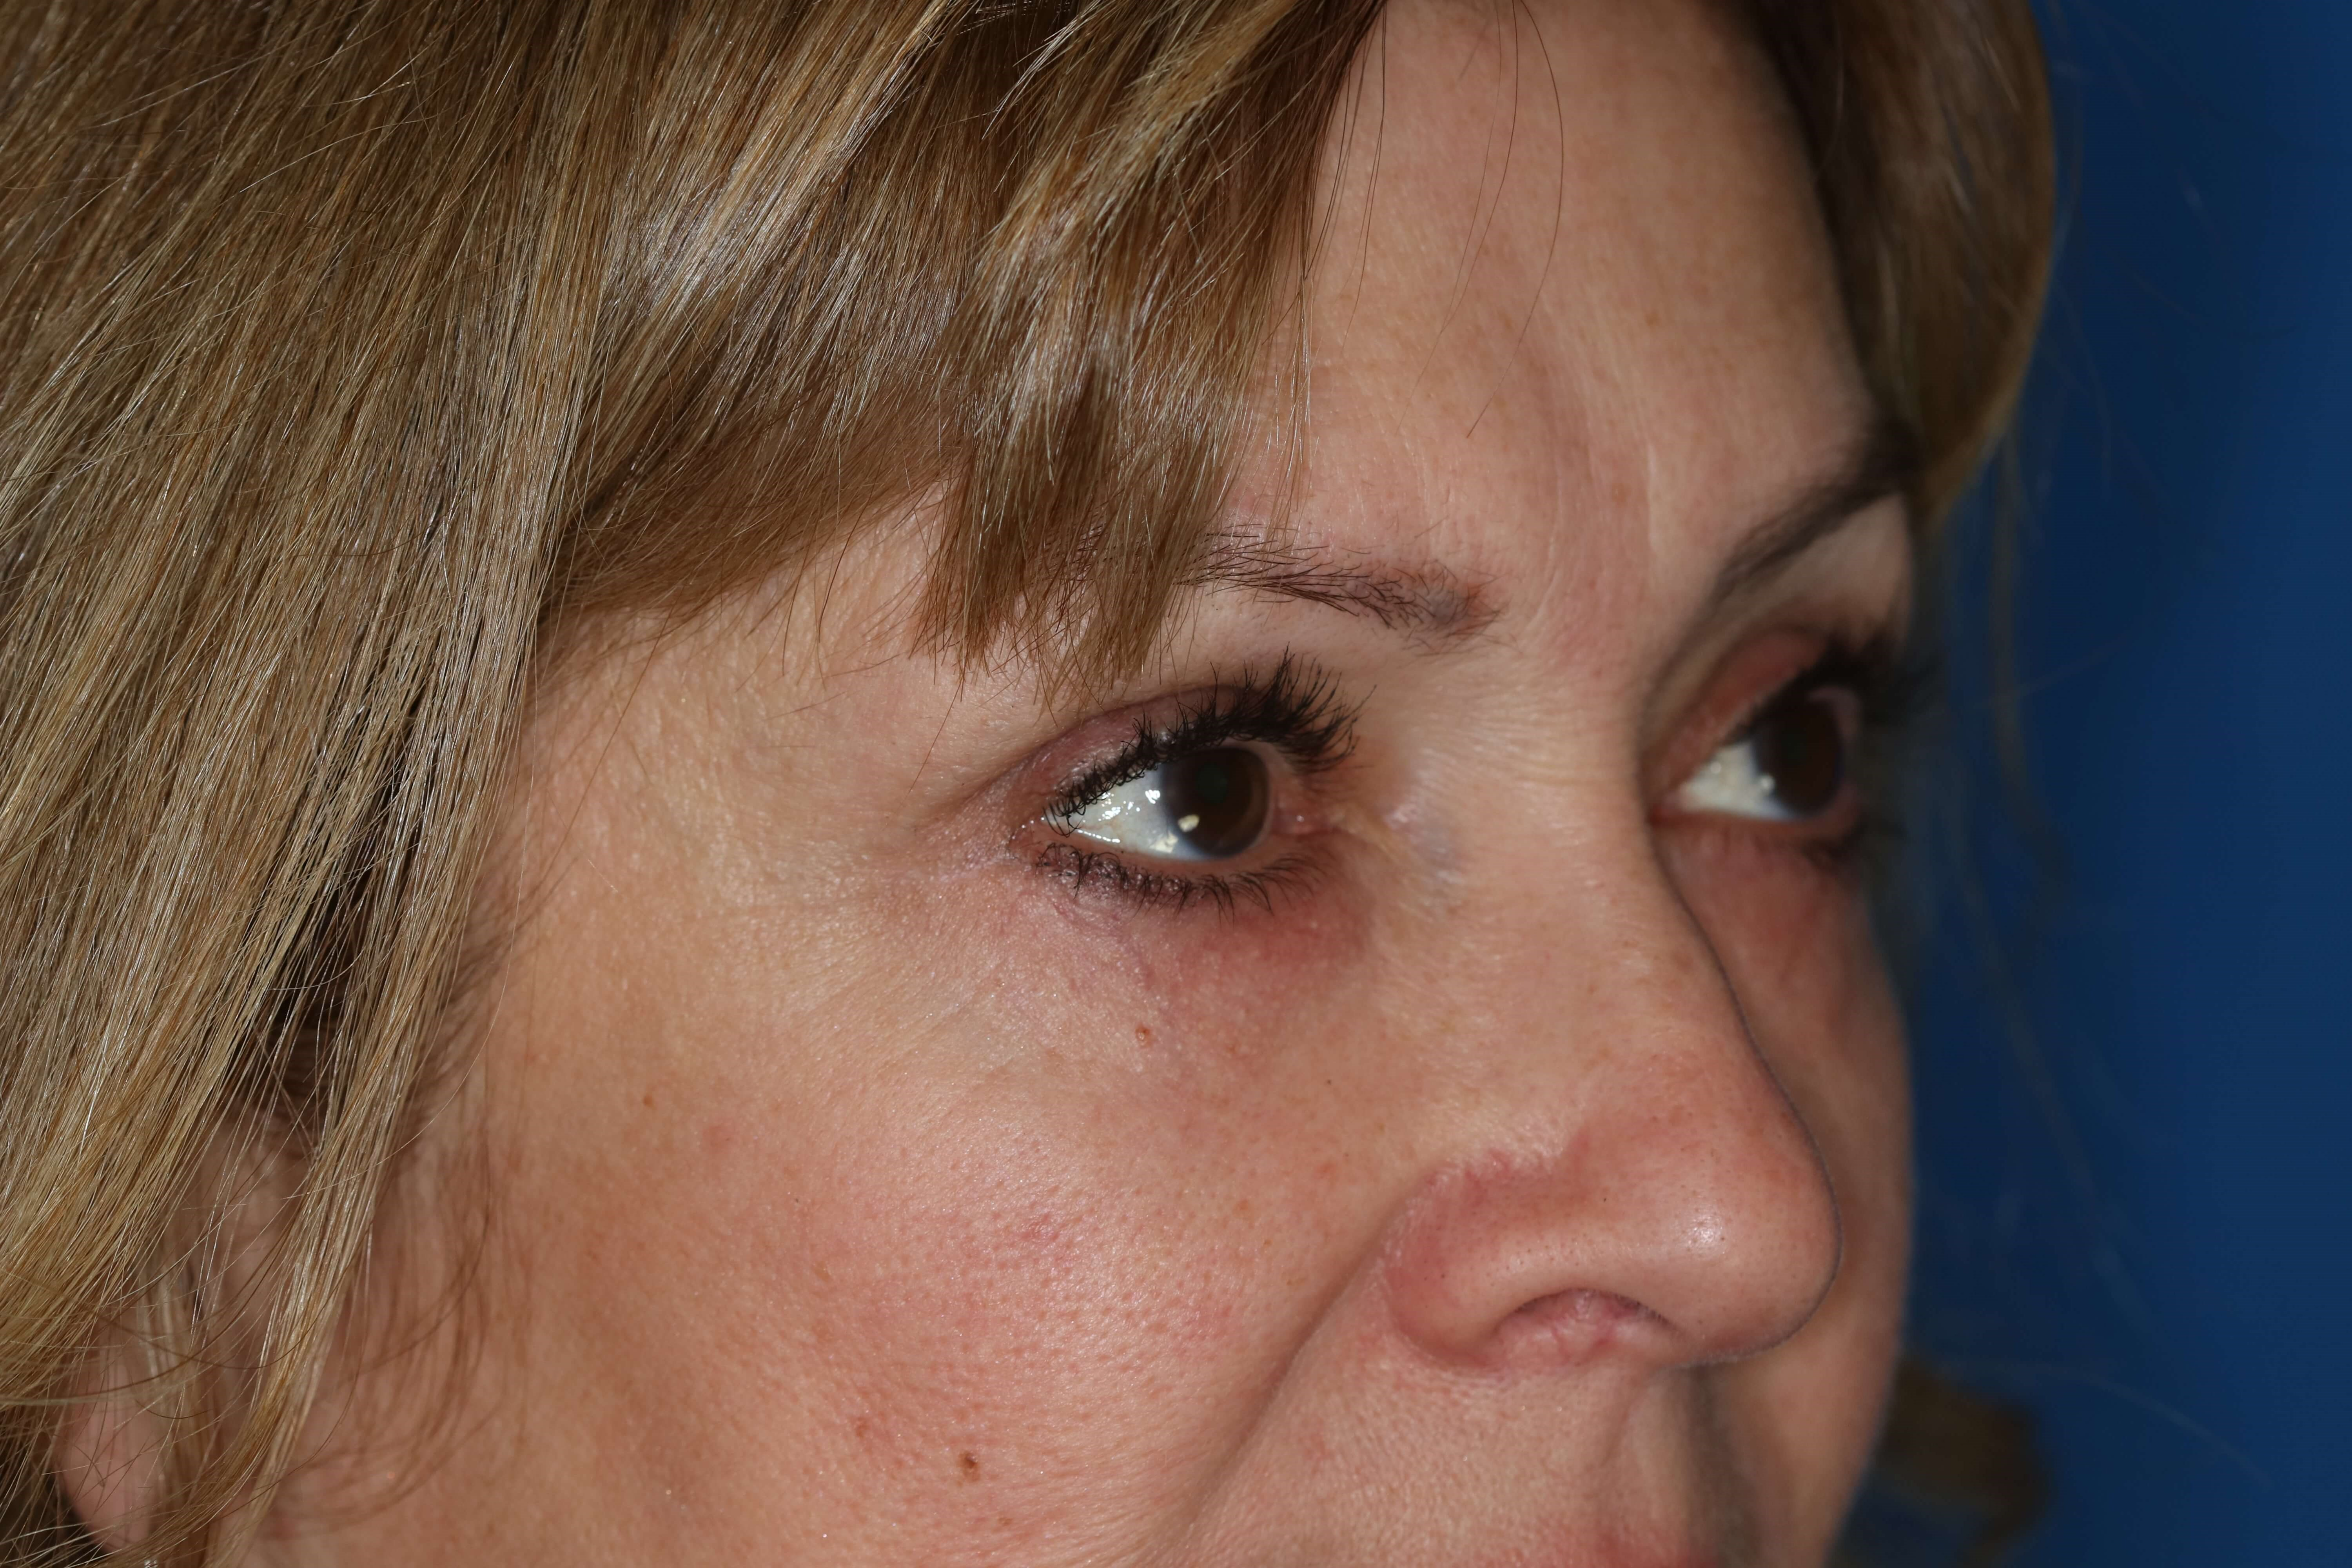 Blepharoplasty, Downers Grove 7 months post op